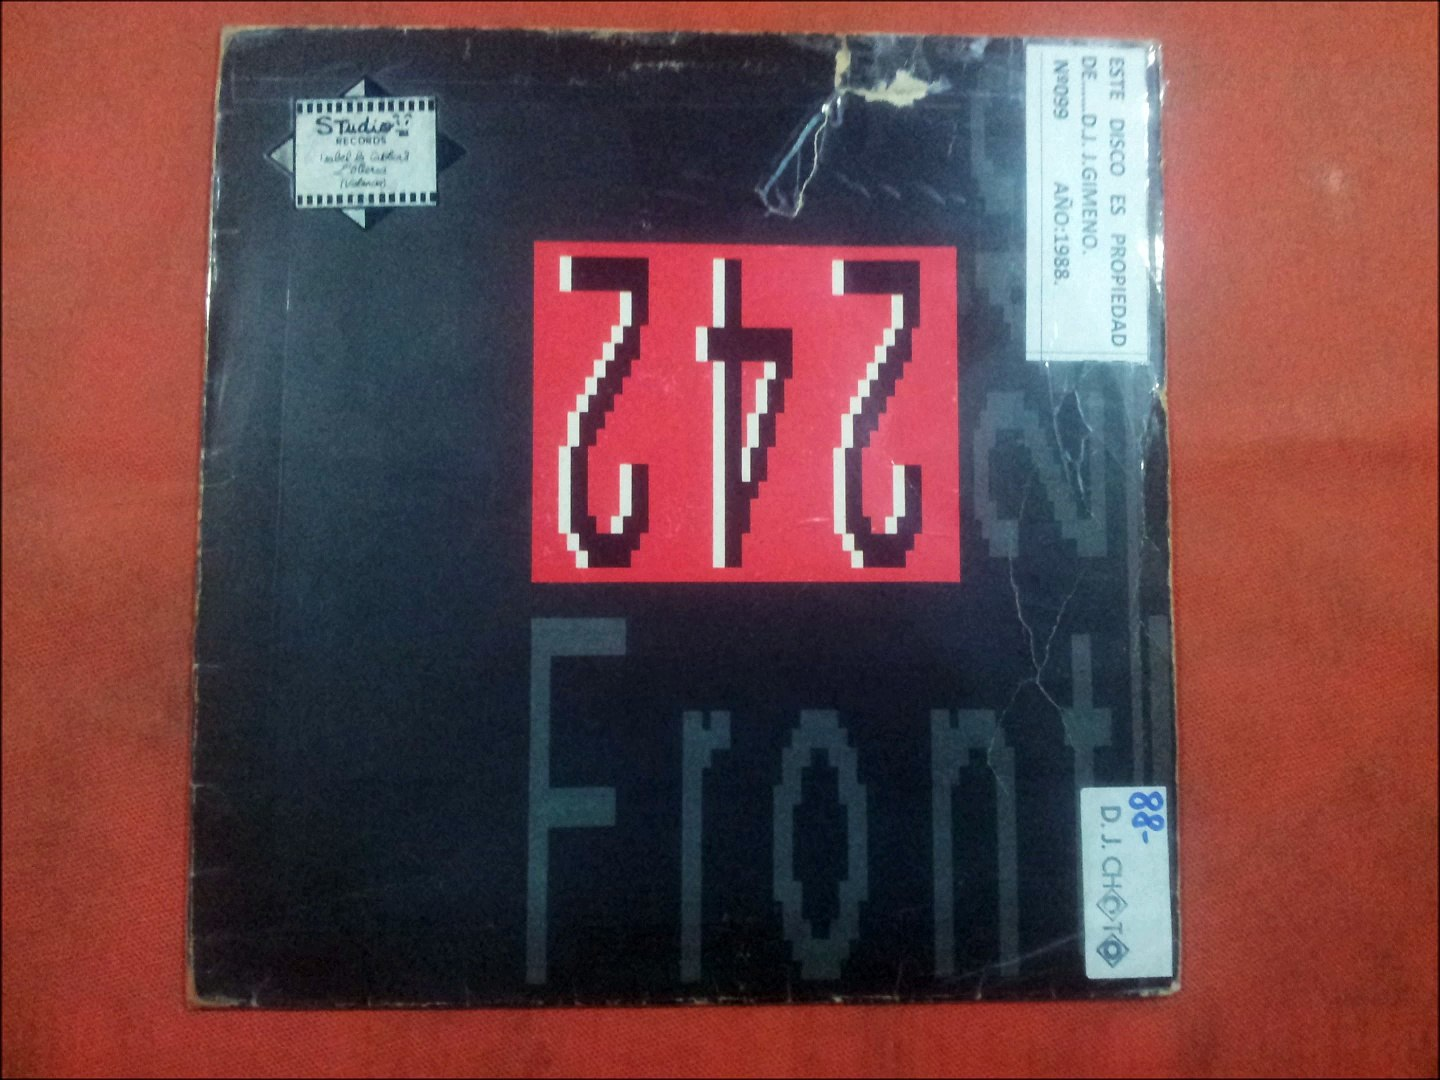 FRONT 242.''FRONT BY FRONT.''.(CIRCLING OVERLAND.)(12'' LP.)(1988.)